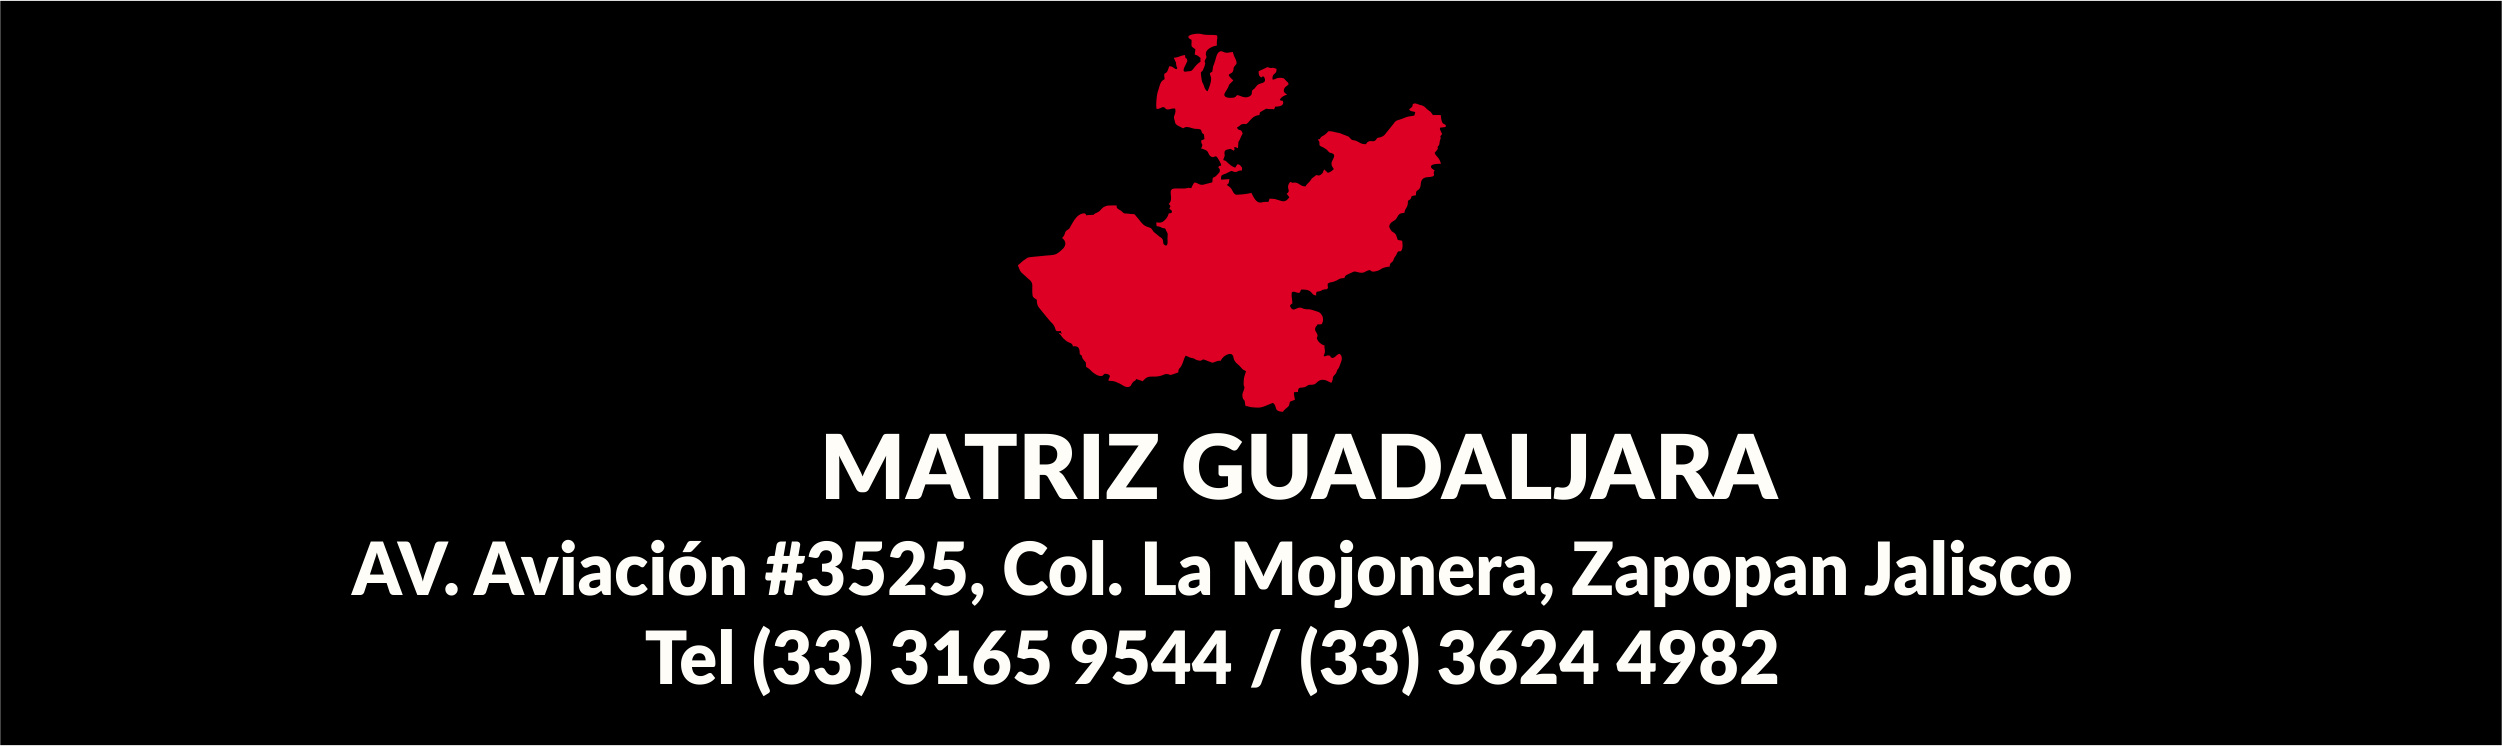 https://0201.nccdn.net/4_2/000/000/046/6ea/Direccion-Matriz-2502x746.jpg